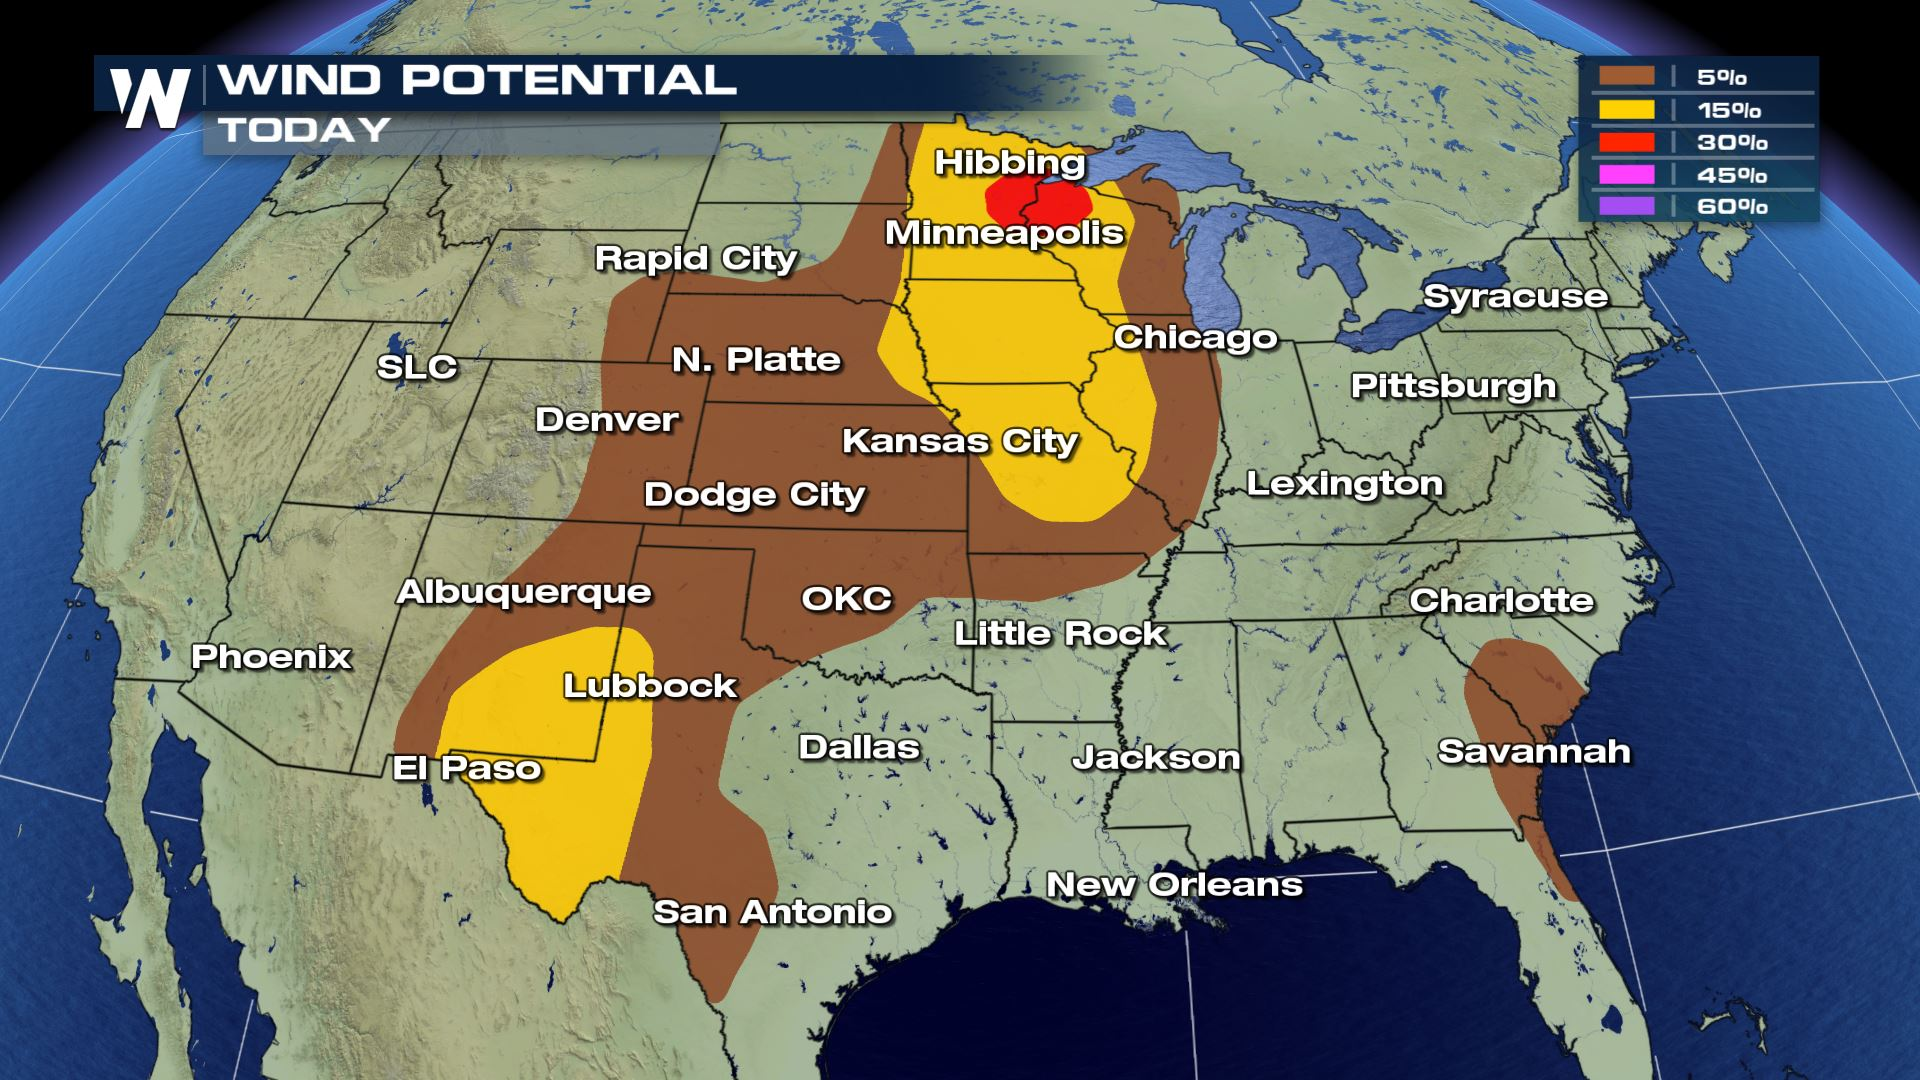 Numerous States Under A Severe Risk Tuesday - WeatherNation